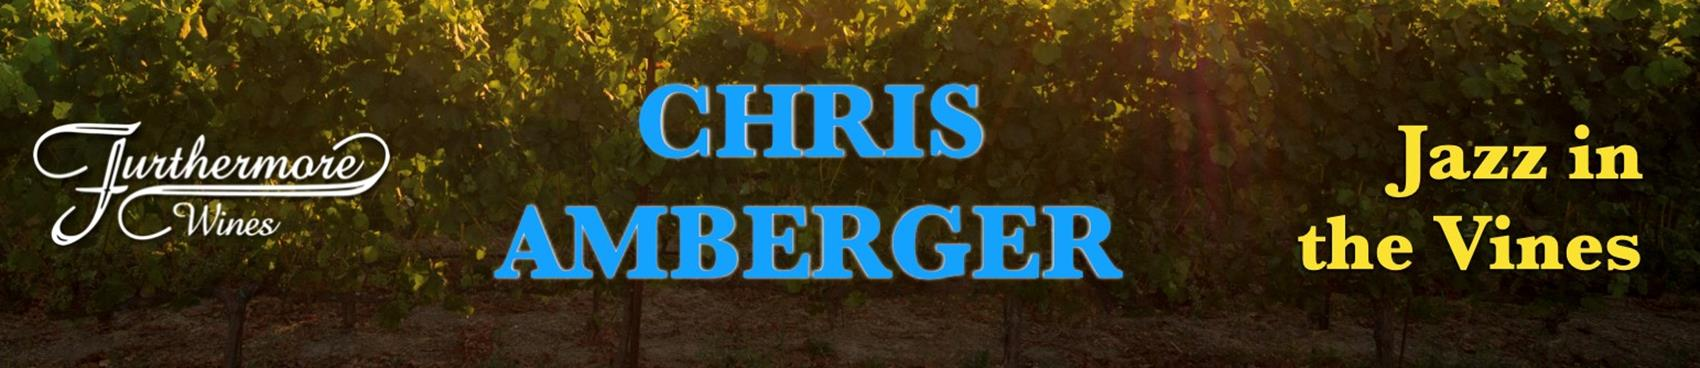 Jazz in the Vines : Chris Amberger & Jeremy Lieber